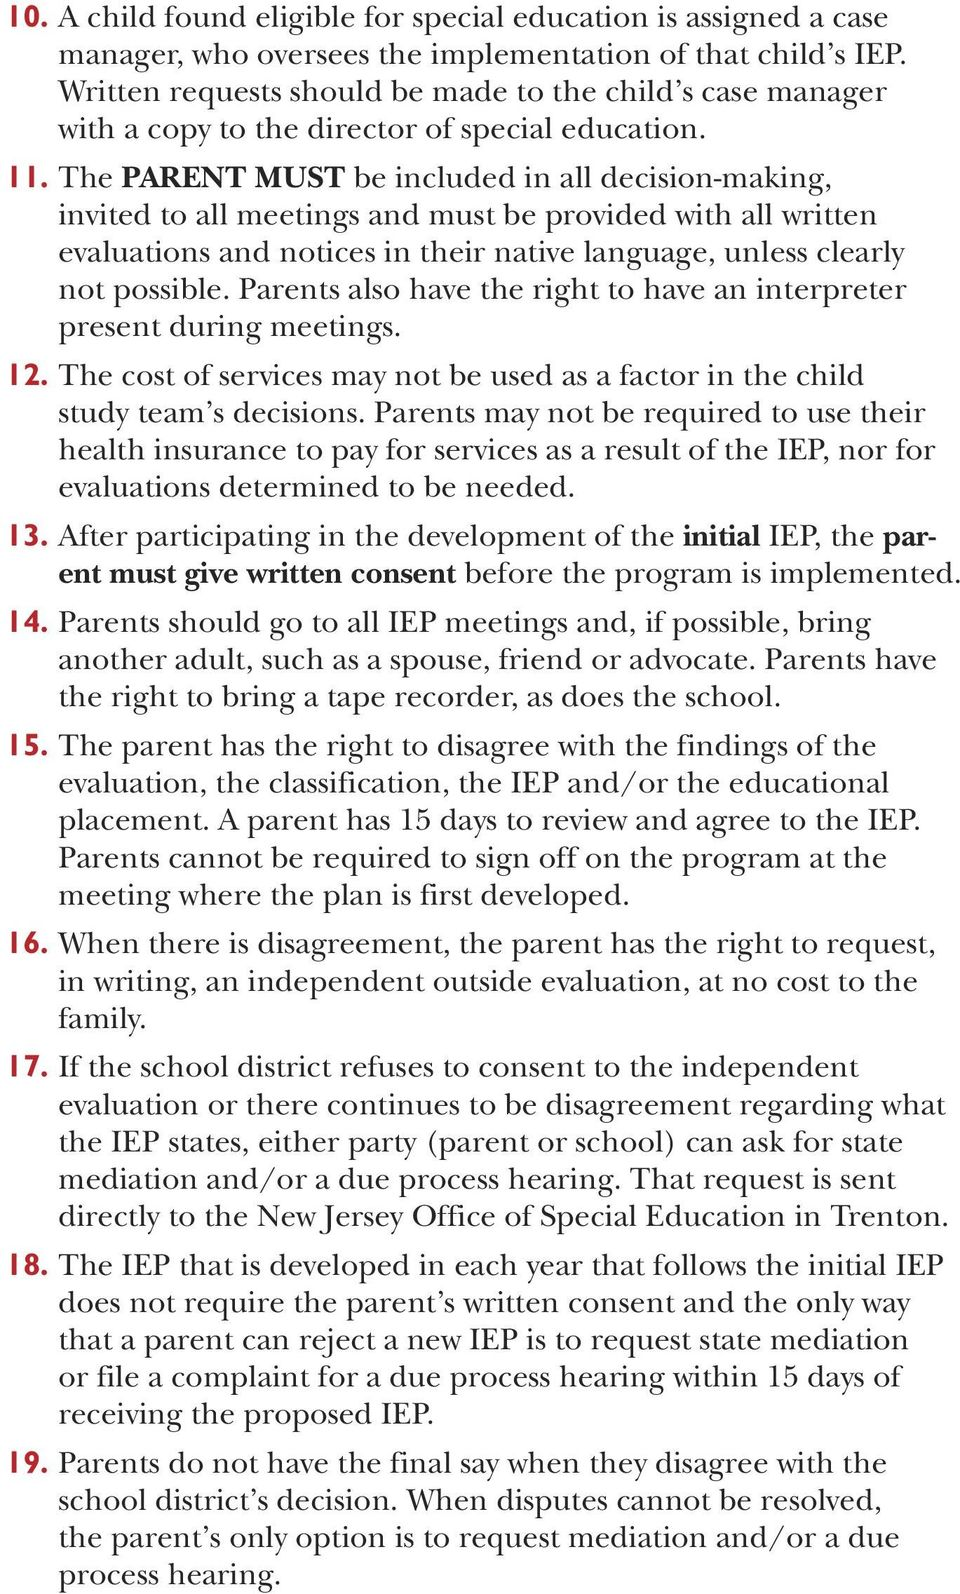 The PARENT MUST be included in all decision-making, invited to all meetings and must be provided with all written evaluations and notices in their native language, unless clearly not possible.